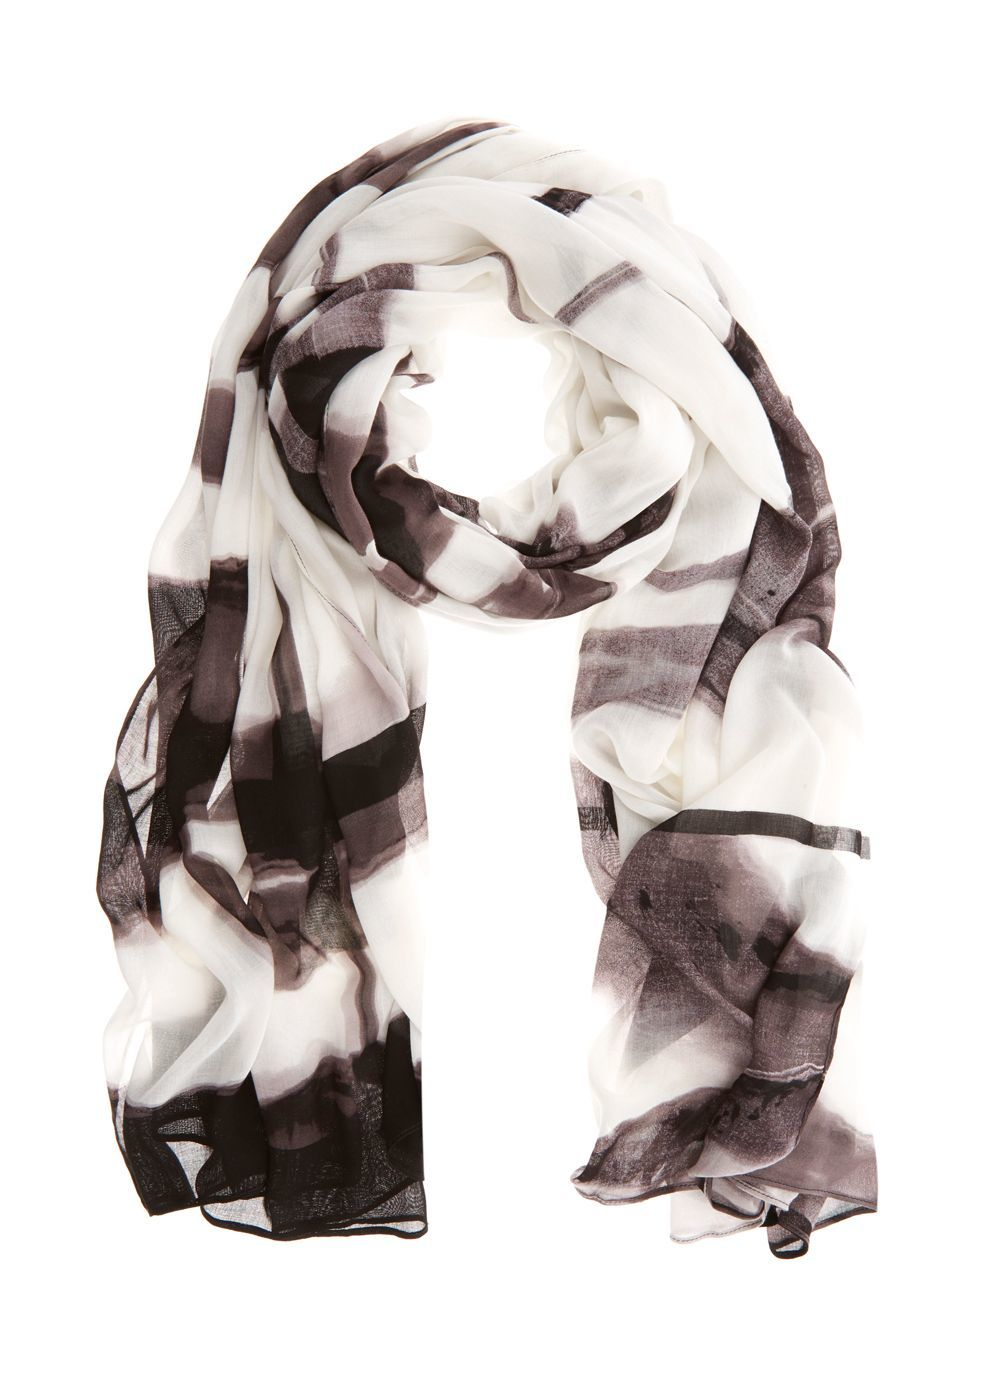 Addison Print Scarf, Multi Coloured - predominant colour: black; occasions: casual; type of pattern: heavy; style: regular; size: standard; material: fabric; pattern: patterned/print; season: s/s 2016; wardrobe: highlight